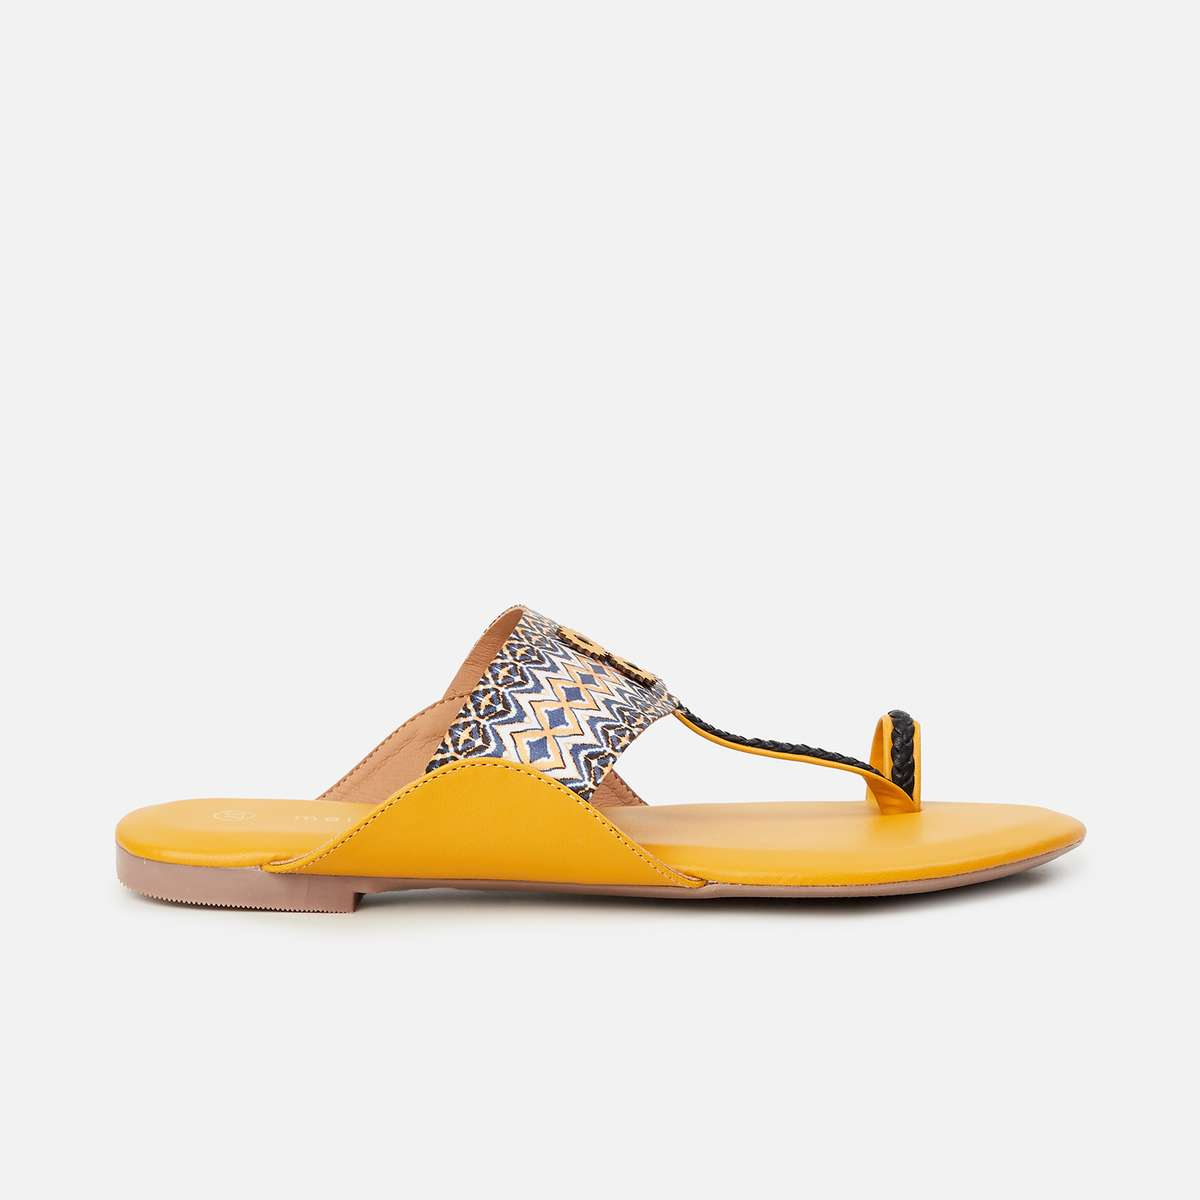 2.MELANGE Womens Printed Chappals with Toe-Ring